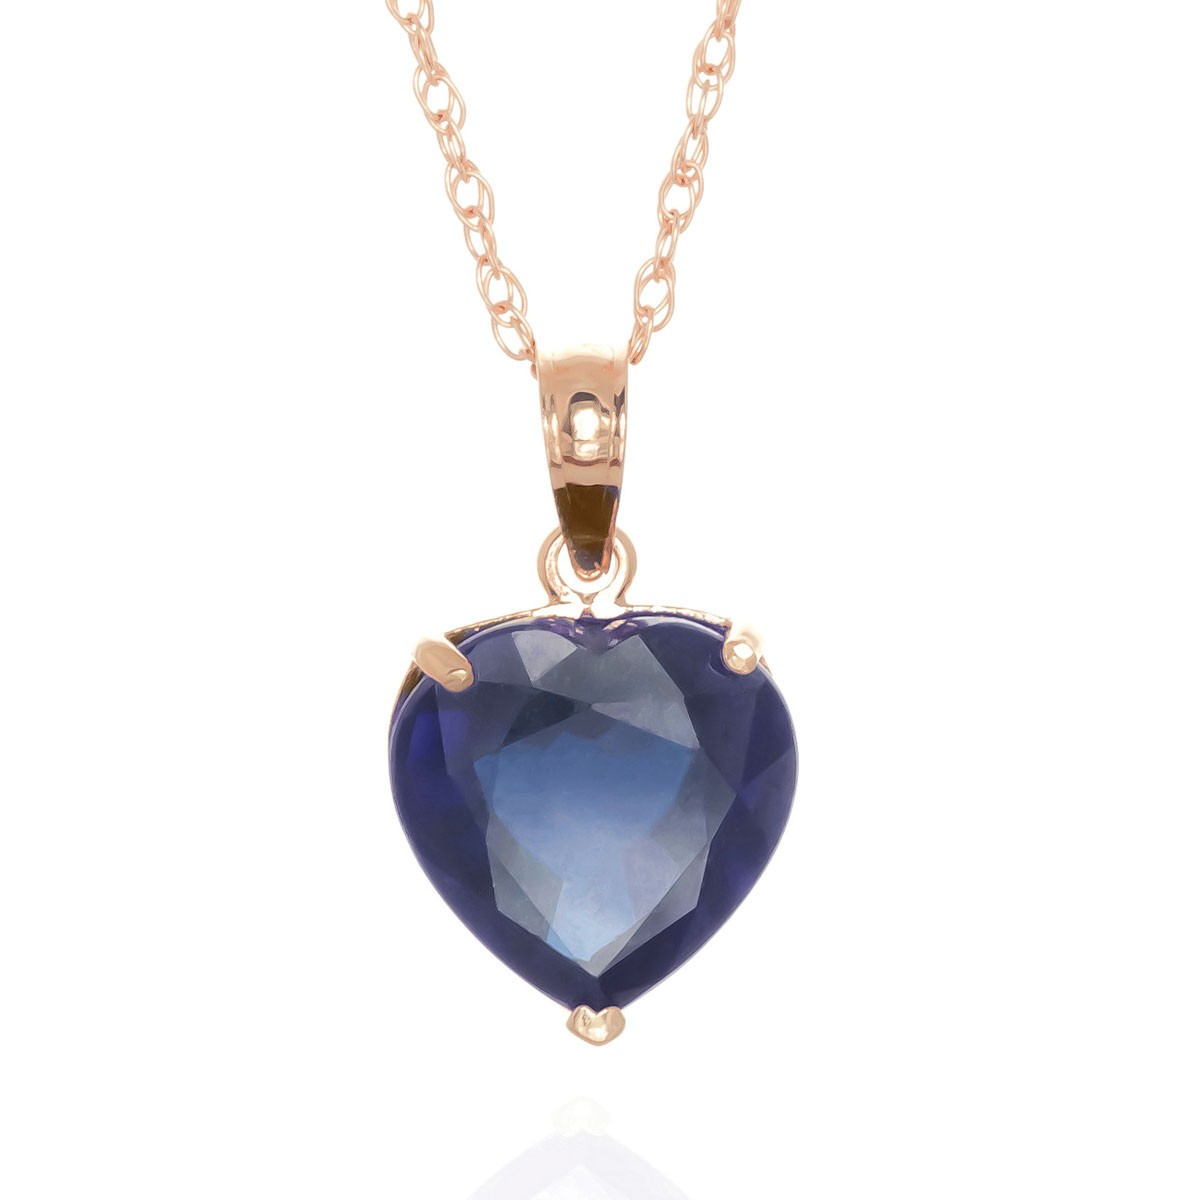 Sapphire Large Heart Pendant Necklace 4.3 ct in 9ct Rose Gold